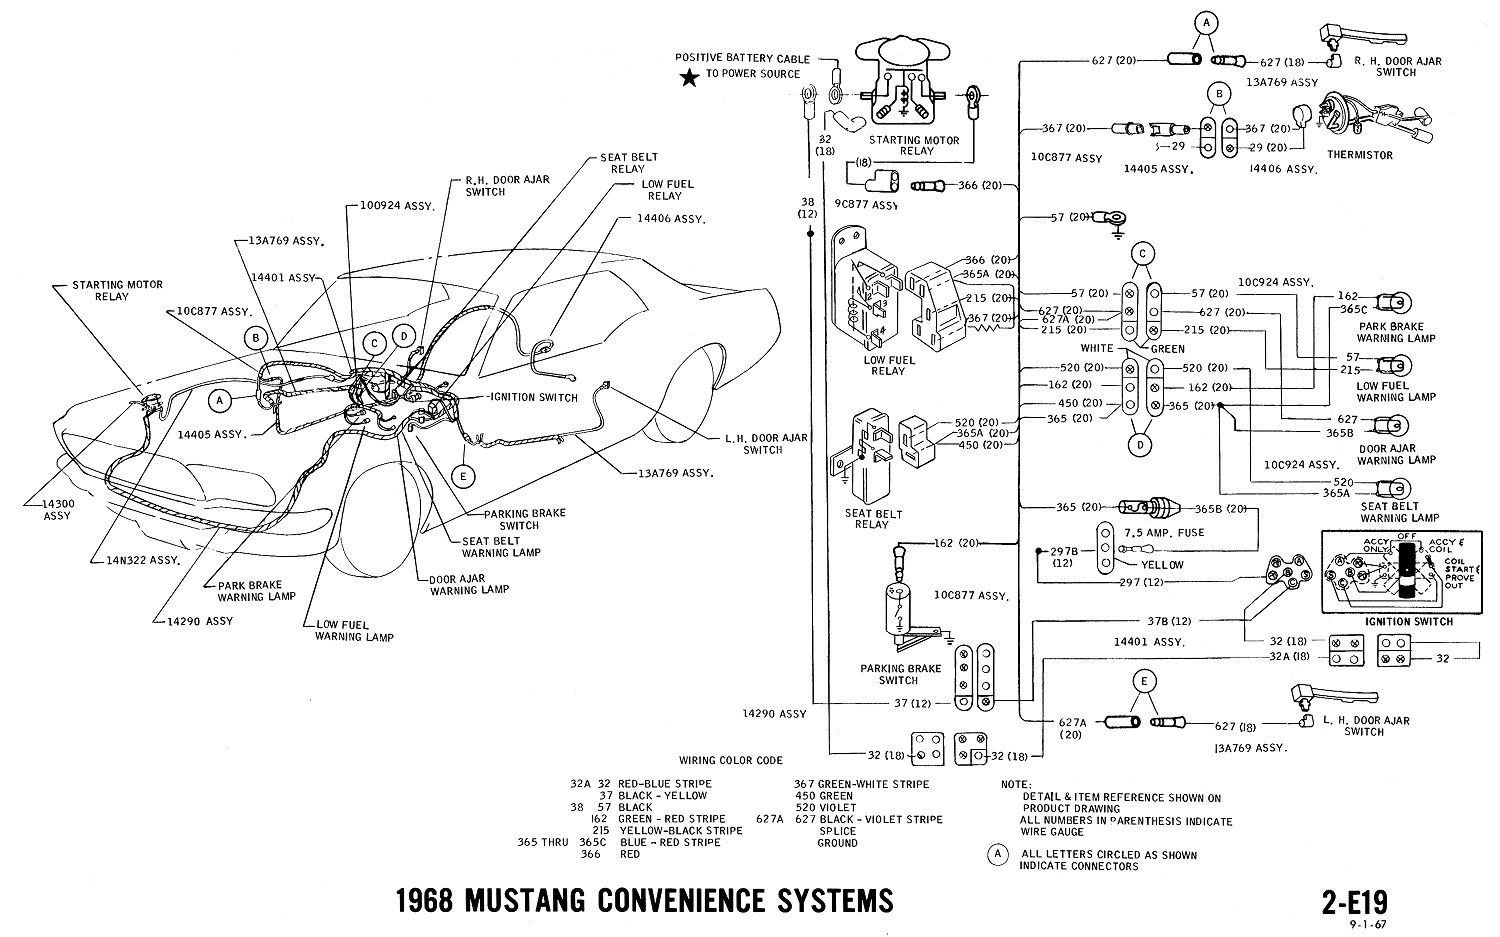 1968 mustang wiring diagram convenience systems 1968 mustang wiring diagram manual 68 mustang ignition wiring 1967 mustang ignition wiring diagram at soozxer.org